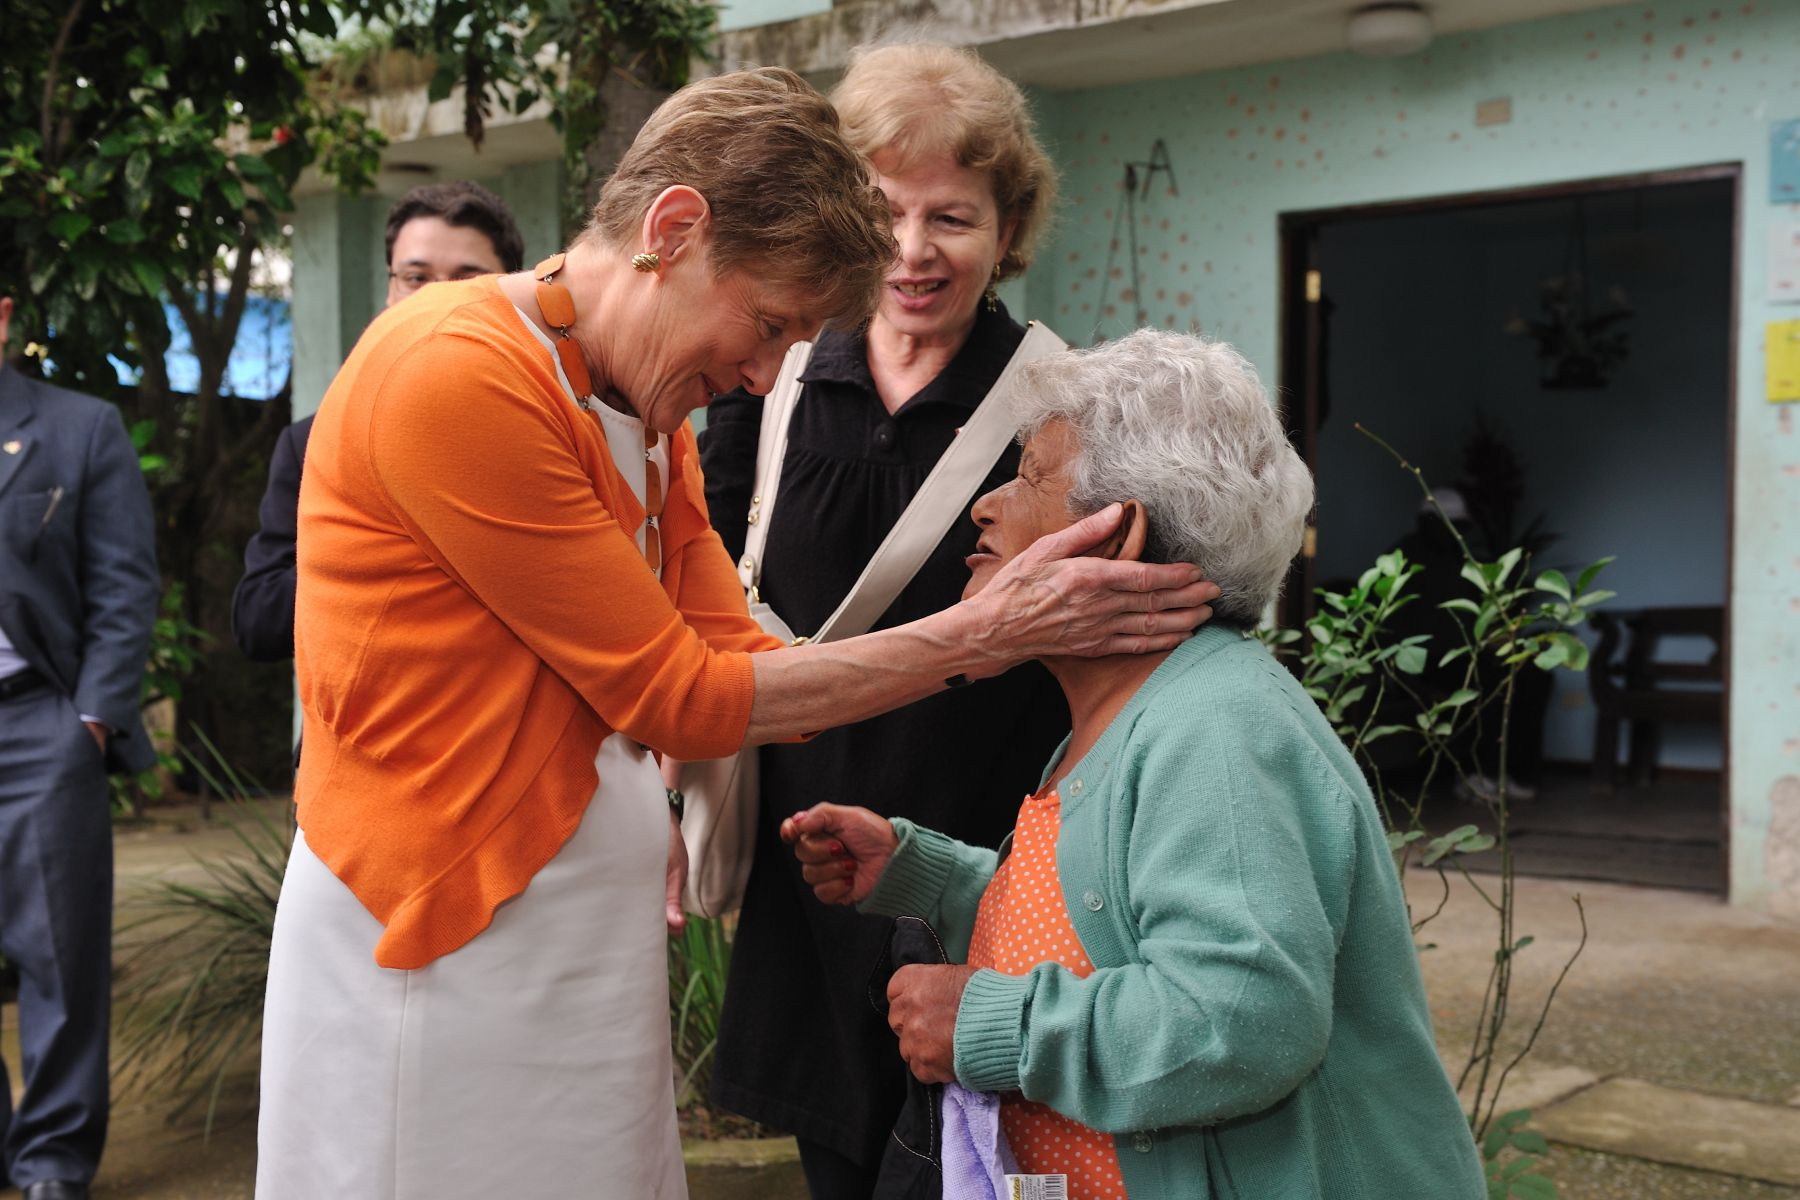 Her Excellency, joined by Sister Natalina and members of the Canadian International Society, visited Casa Madre Teodora dos Idosos (House for the Elderly), which was founded in 1989.